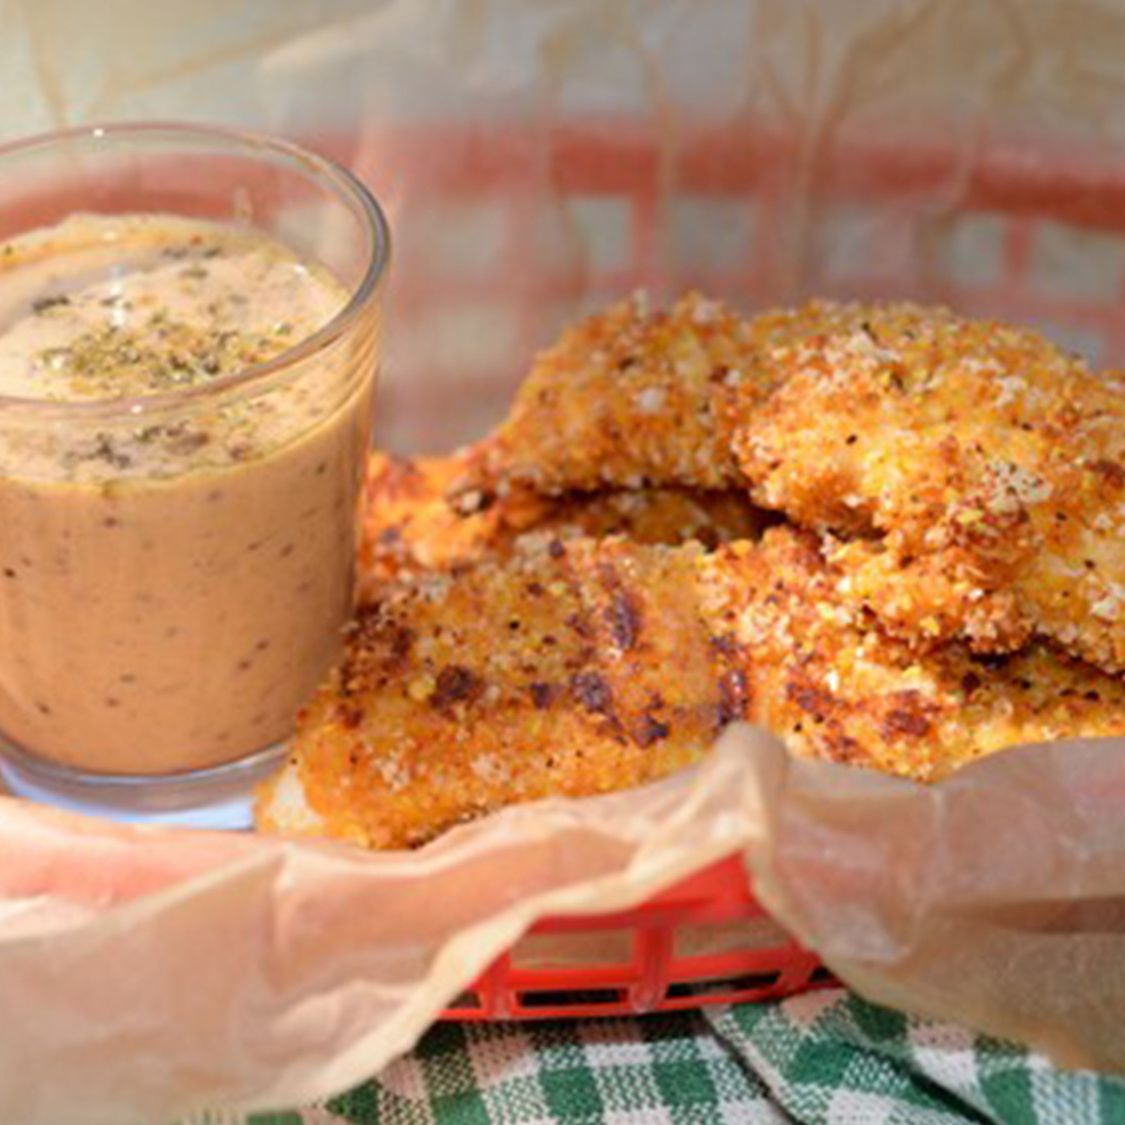 parmesan_baked_fish_sticks_with_dipping_sauce.jpg